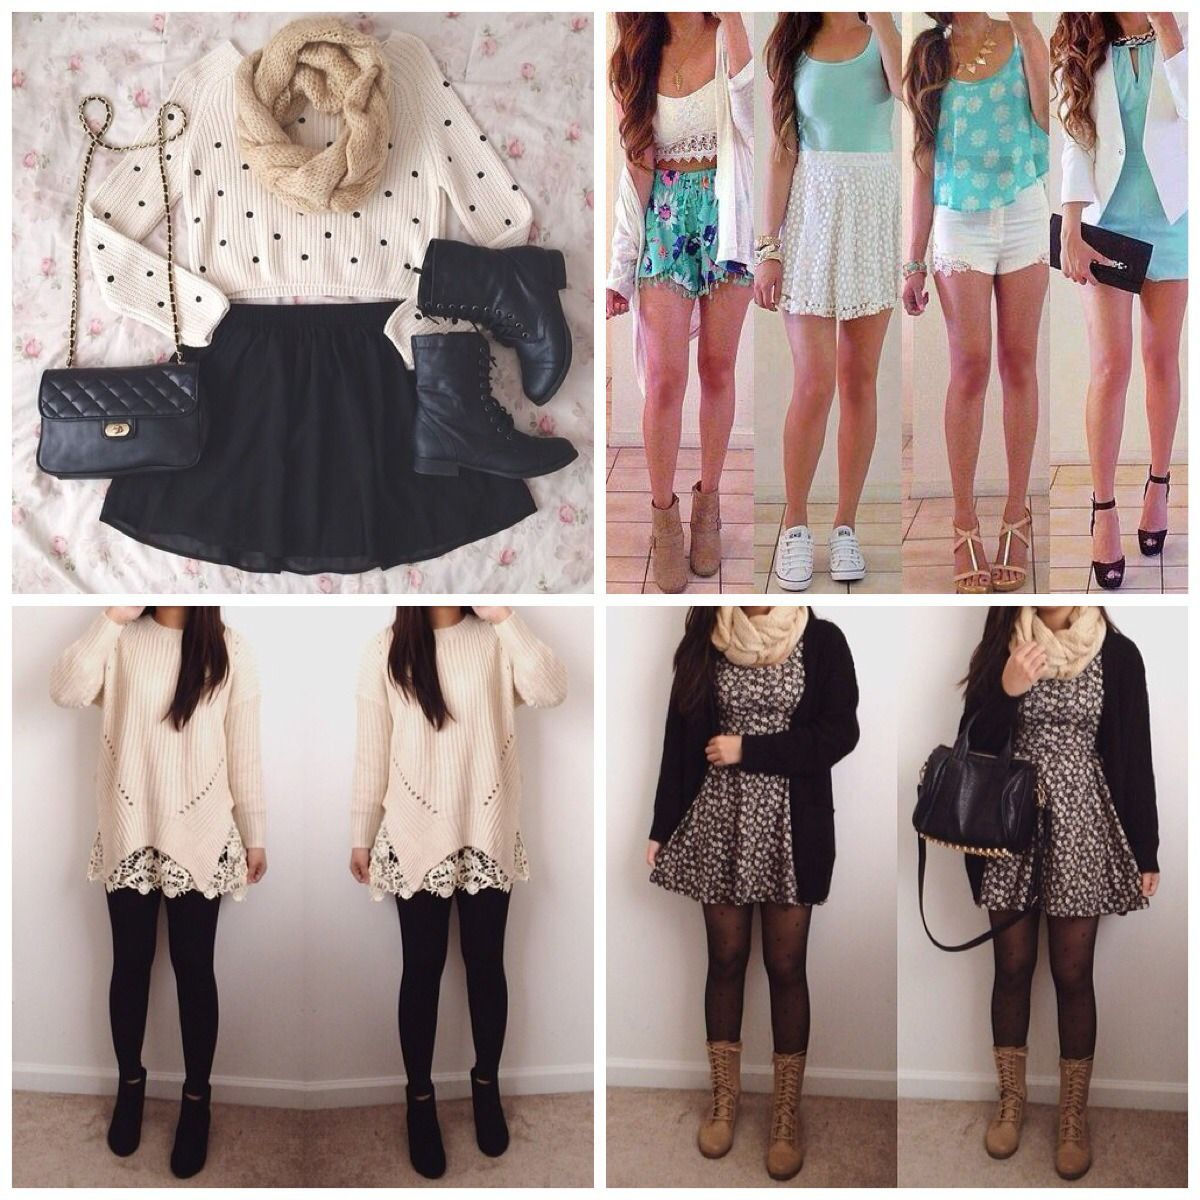 School cute outfits tumblr photo